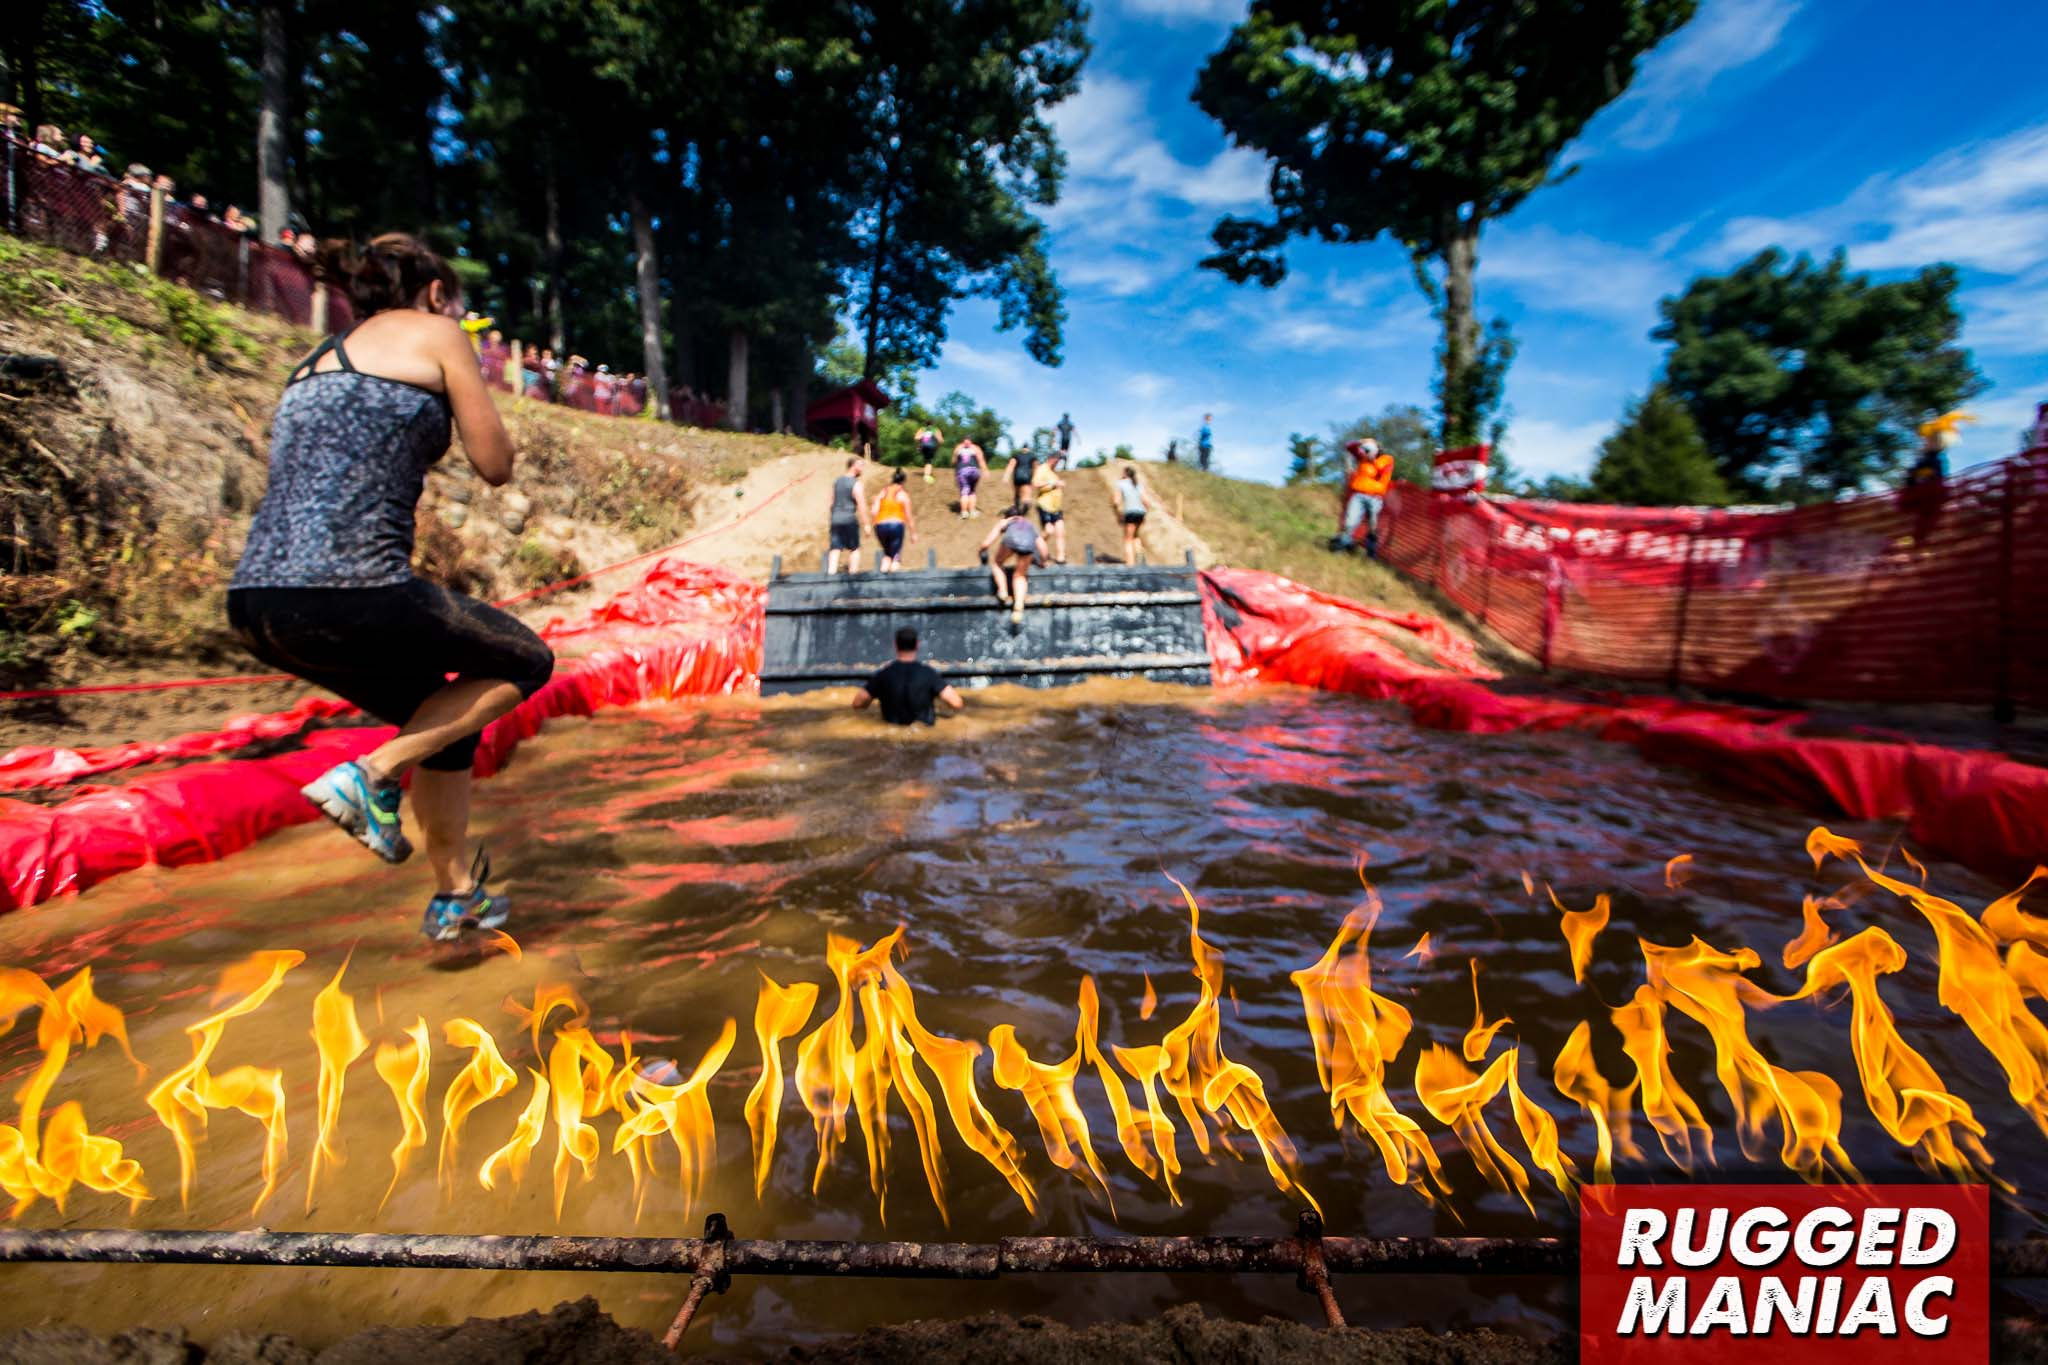 Rugged Maniac The Best Value In Ocr Mud Run Obstacle